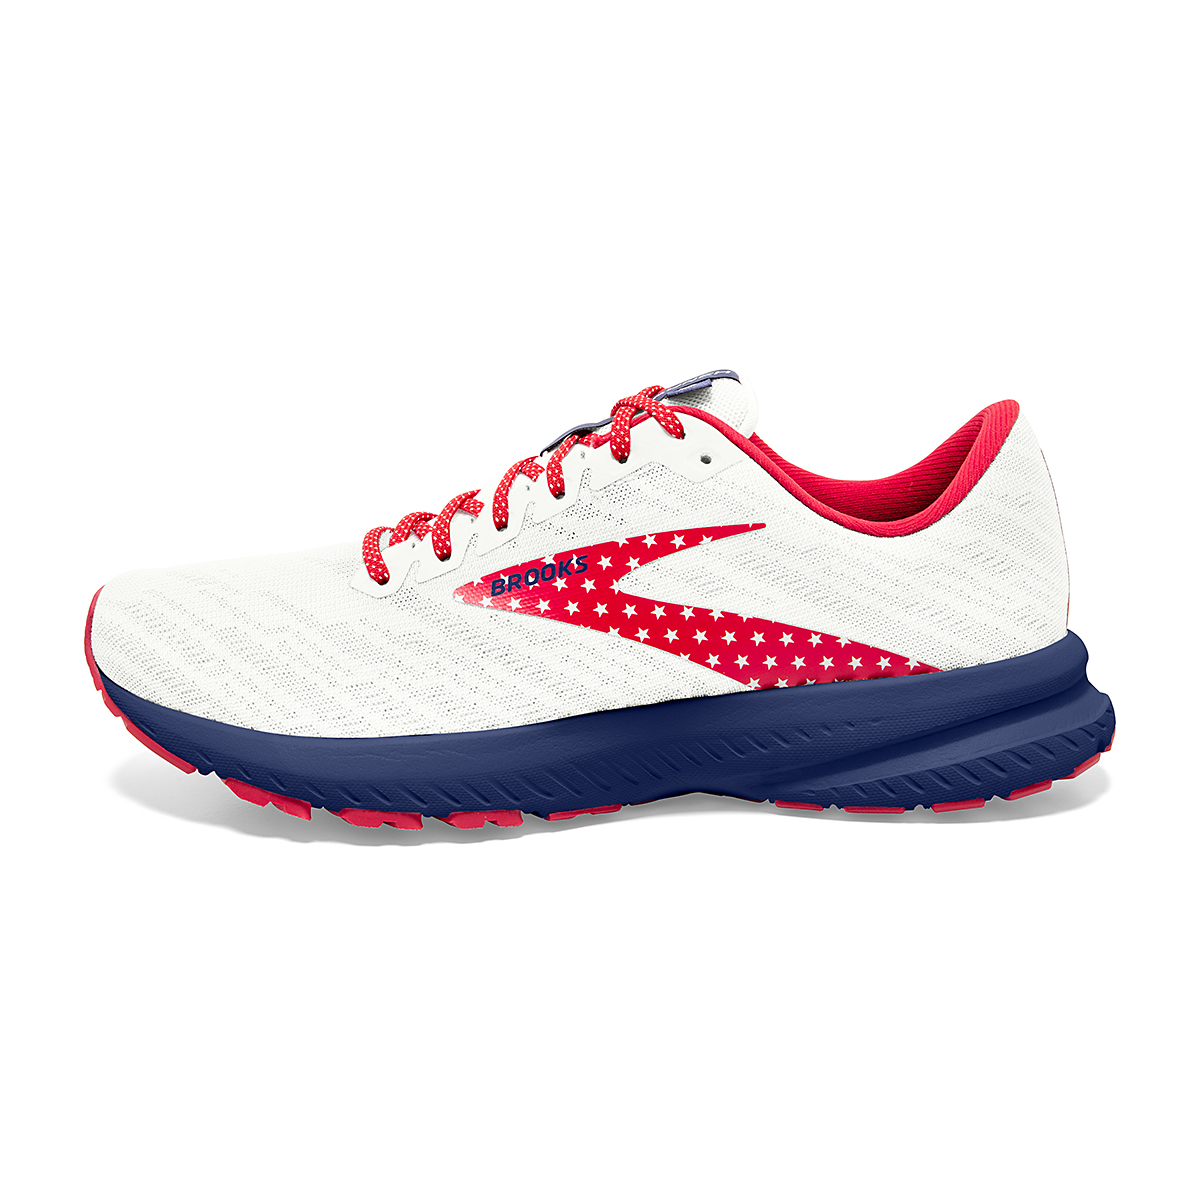 Women's Brooks Launch 7 Usa Running Shoe - Color: White/Blue/Red - Size: 6.5 - Width: Regular, White/Blue/Red, large, image 2